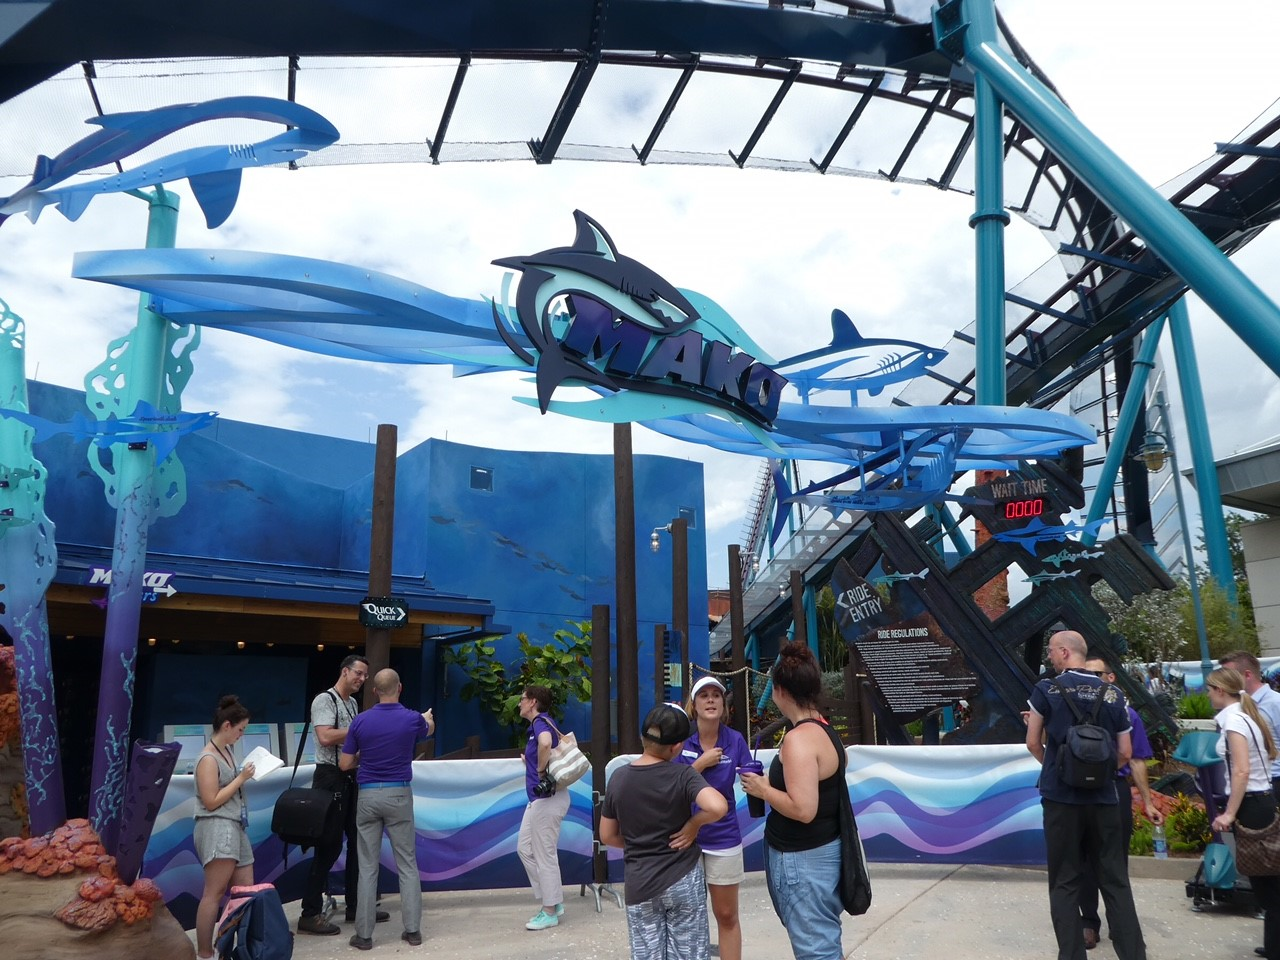 Mako Roller Coaster at SeaWorld